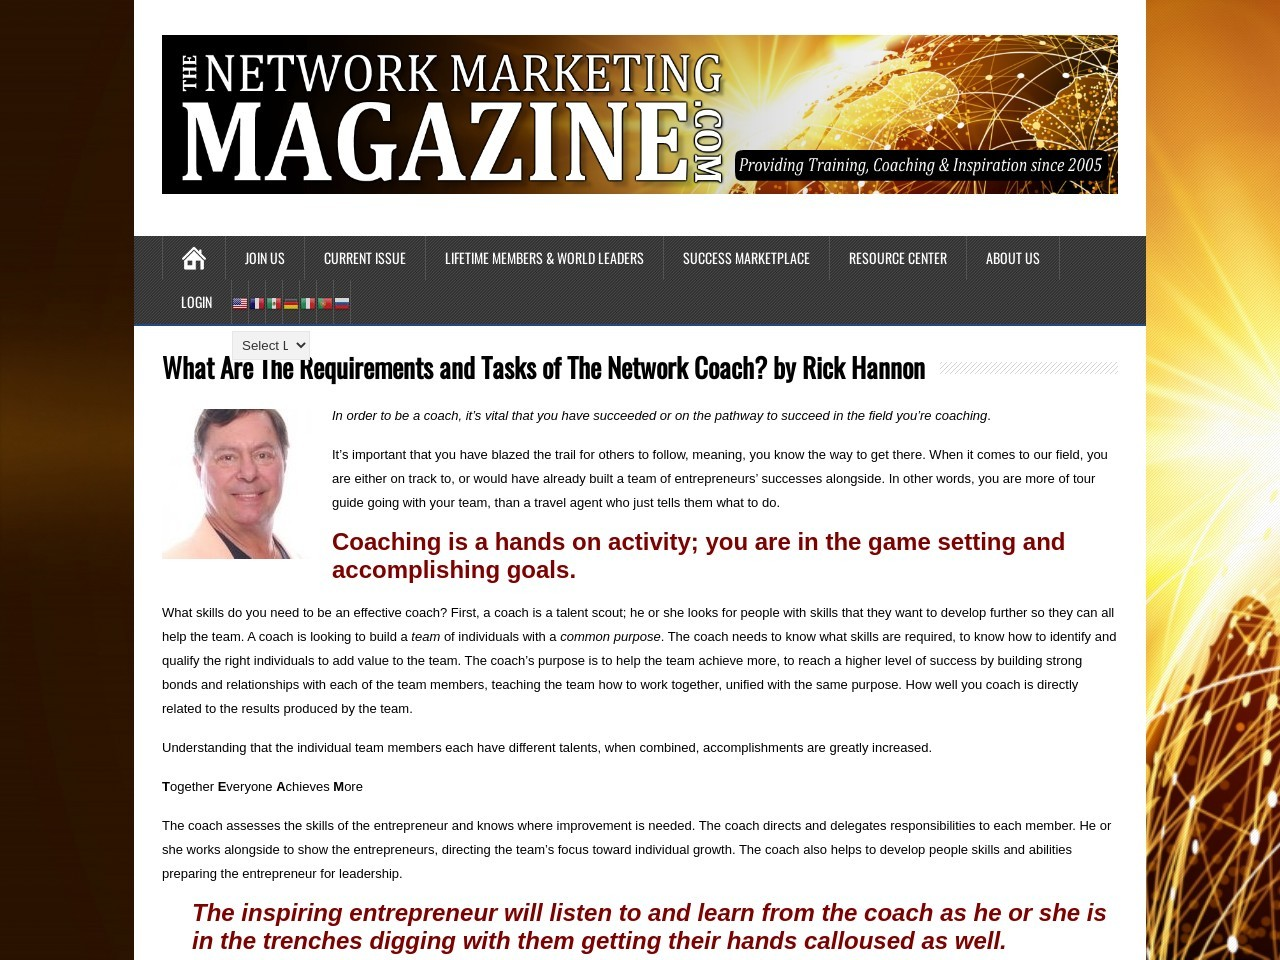 What Are The Requirements and Tasks of The Network Coach? by Rick Hannon